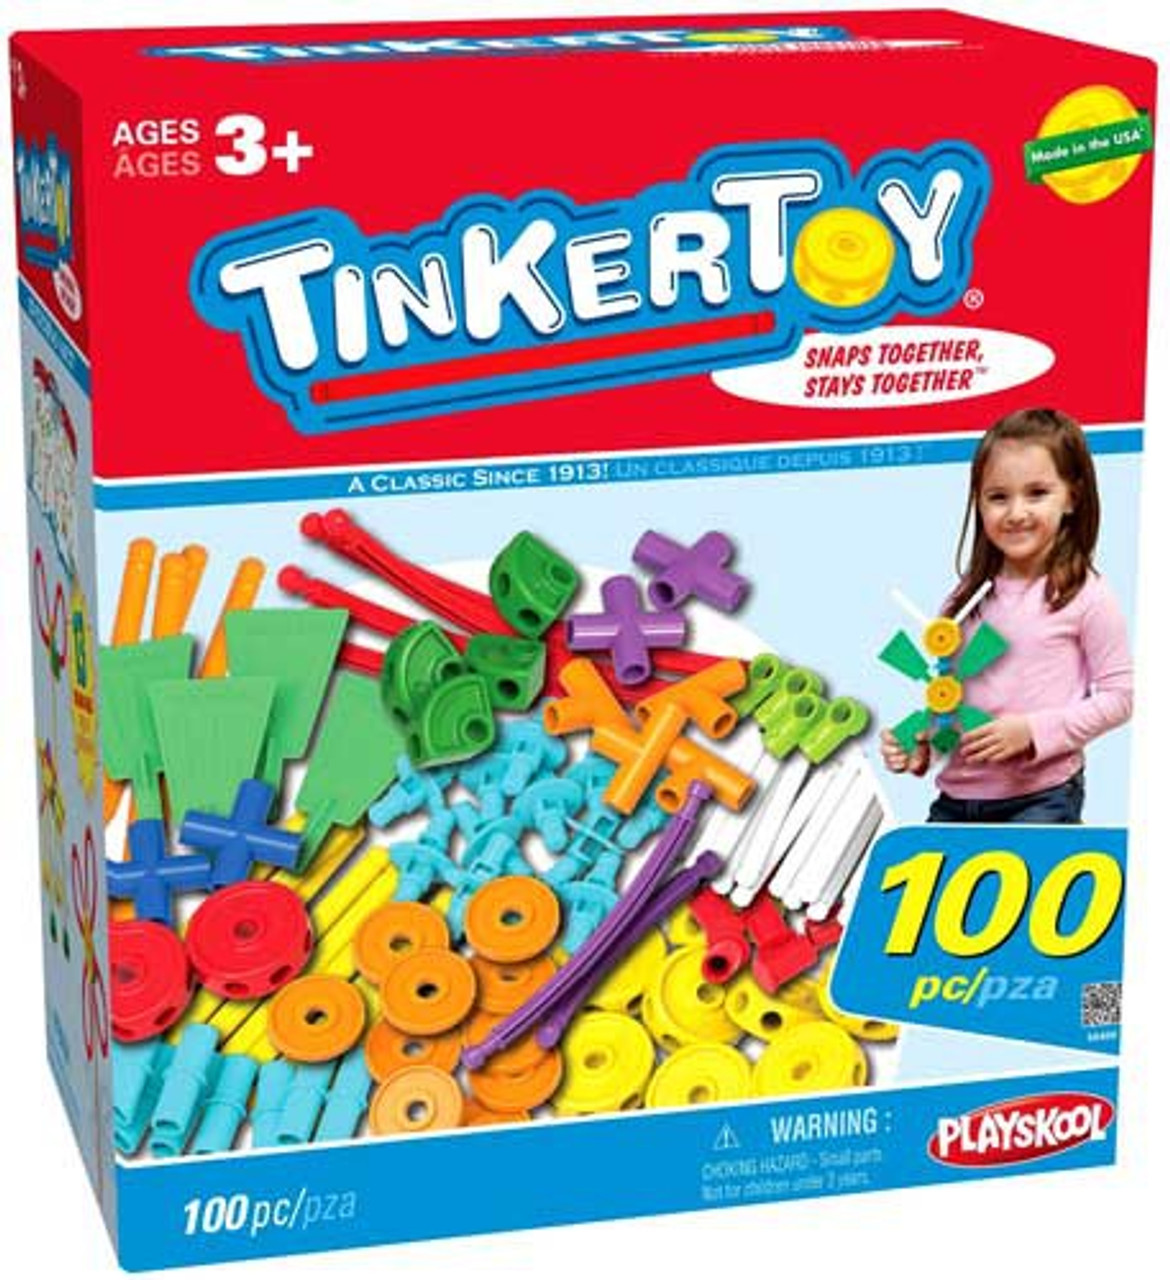 K'NEX Tinker Toy 100 Piece Essentials Value Set #56456